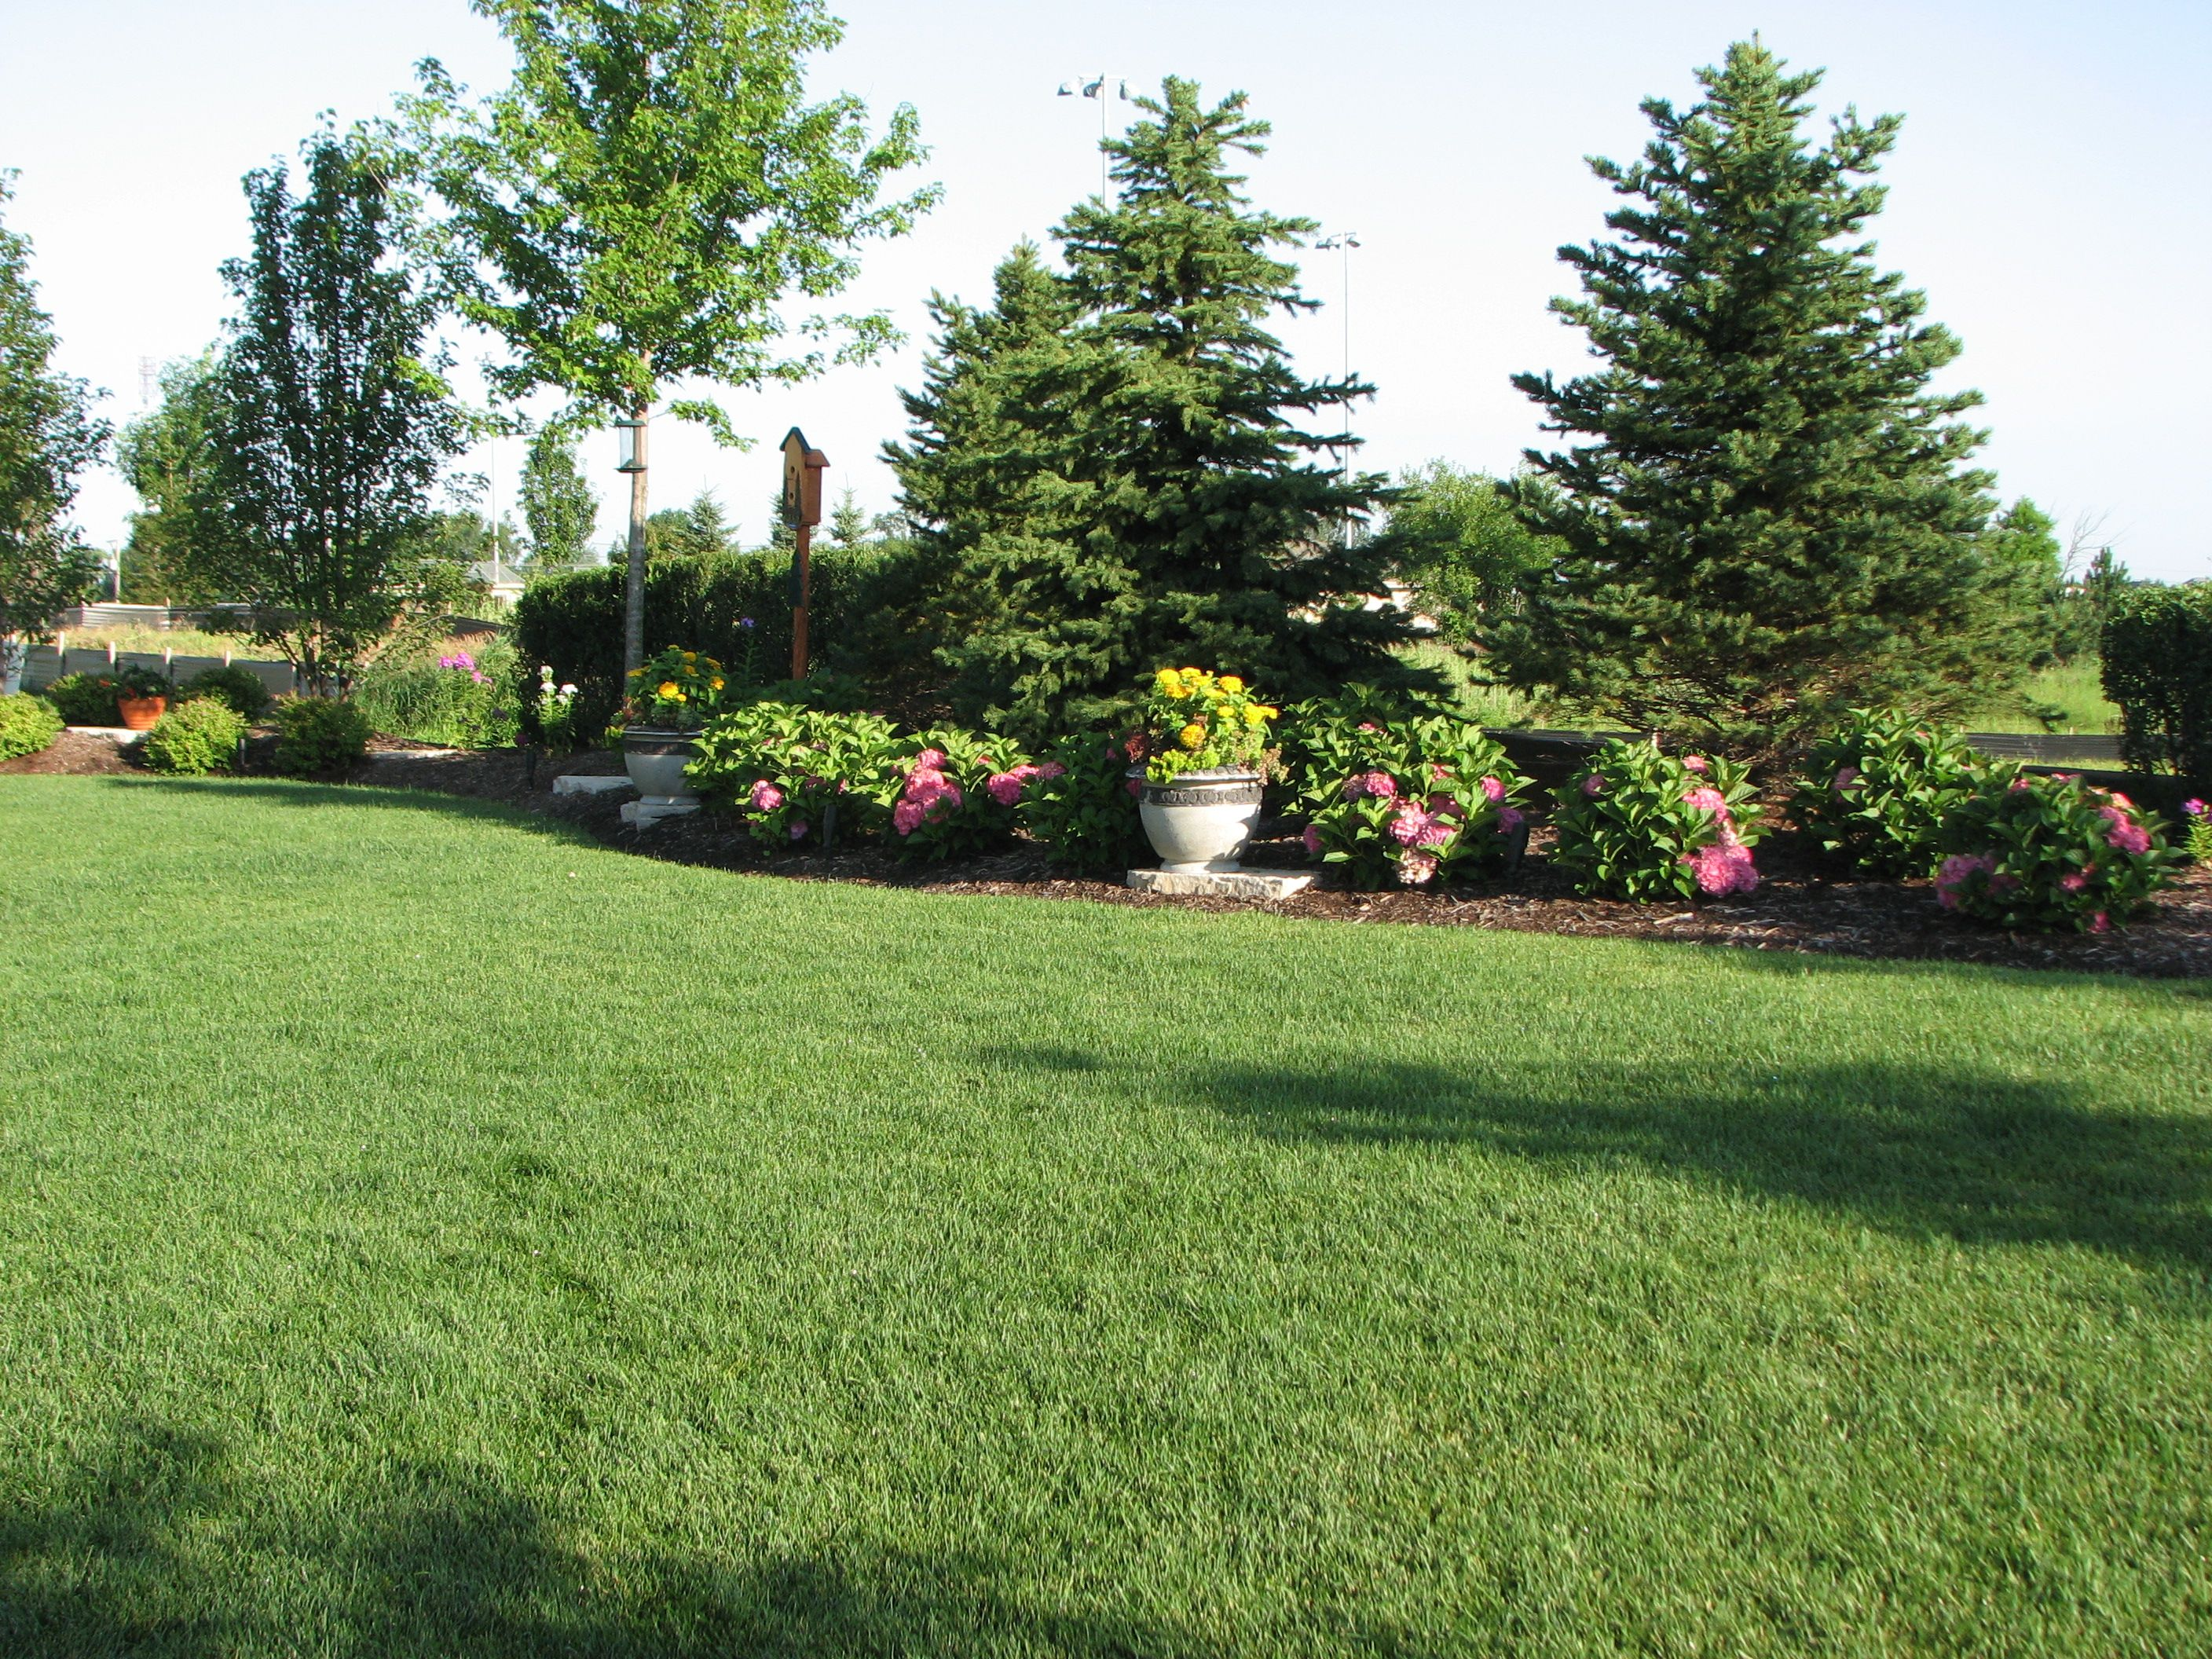 Backyard landscaping for privacy existing home for Backyard planting designs